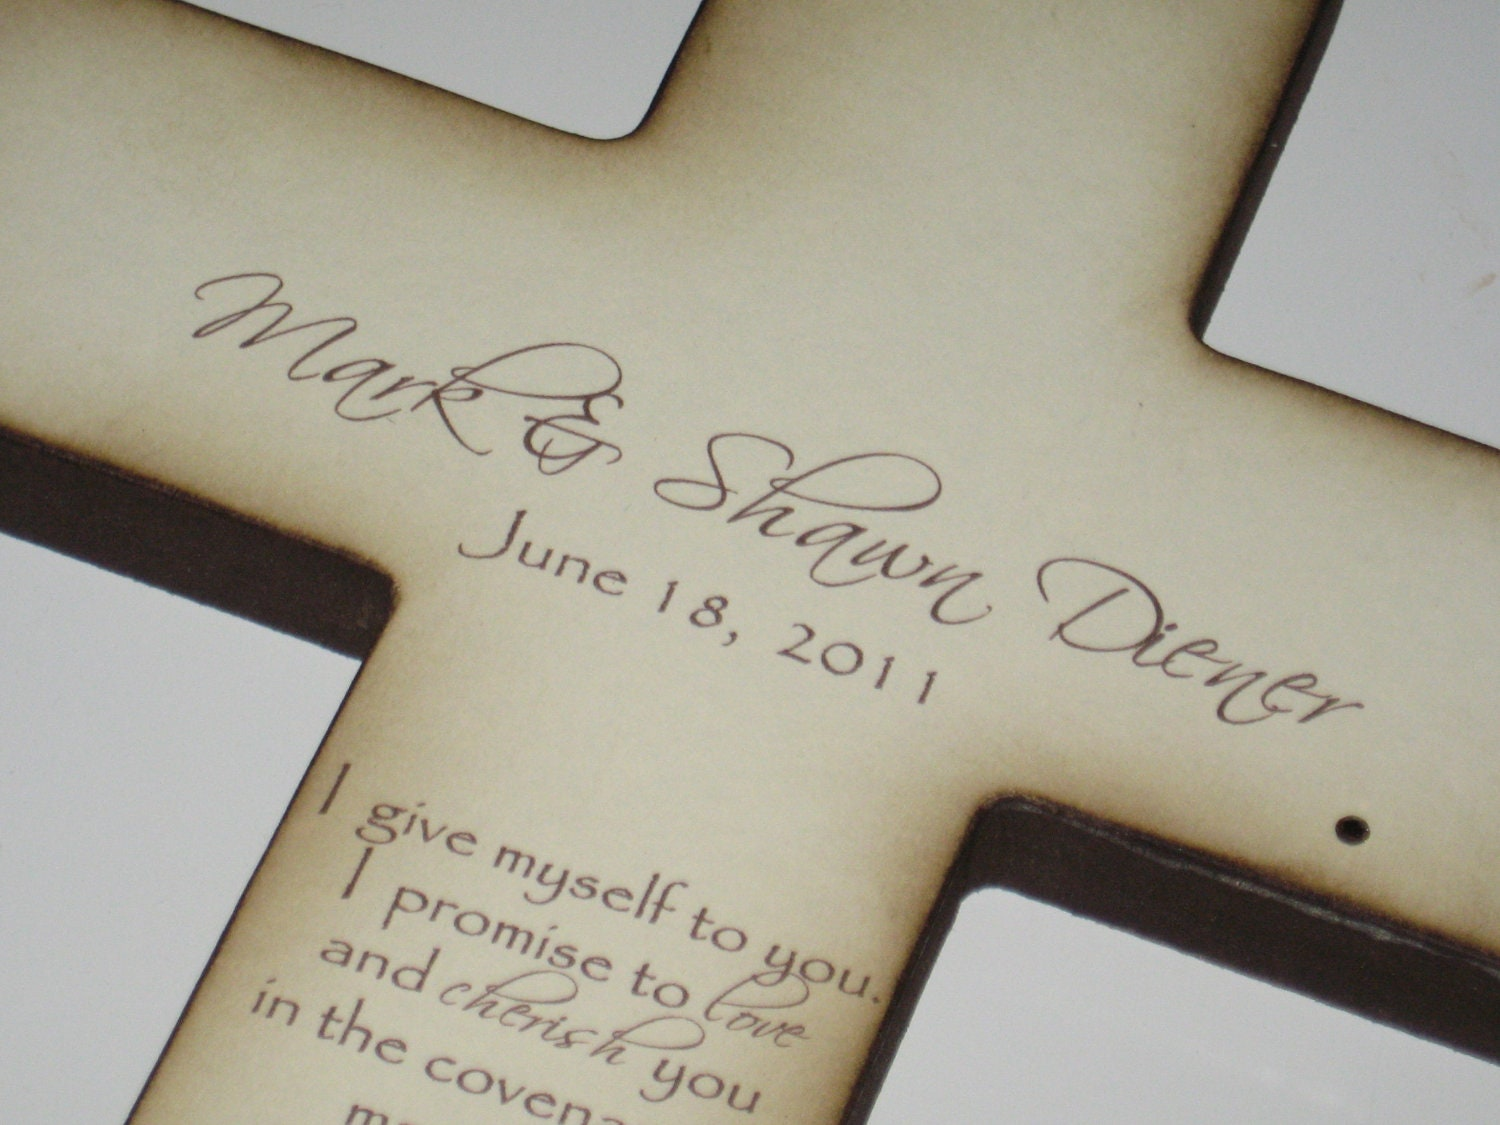 Personal Wedding Gifts For The Bride: Personalized Christian Wedding Cross Gift For Bride And